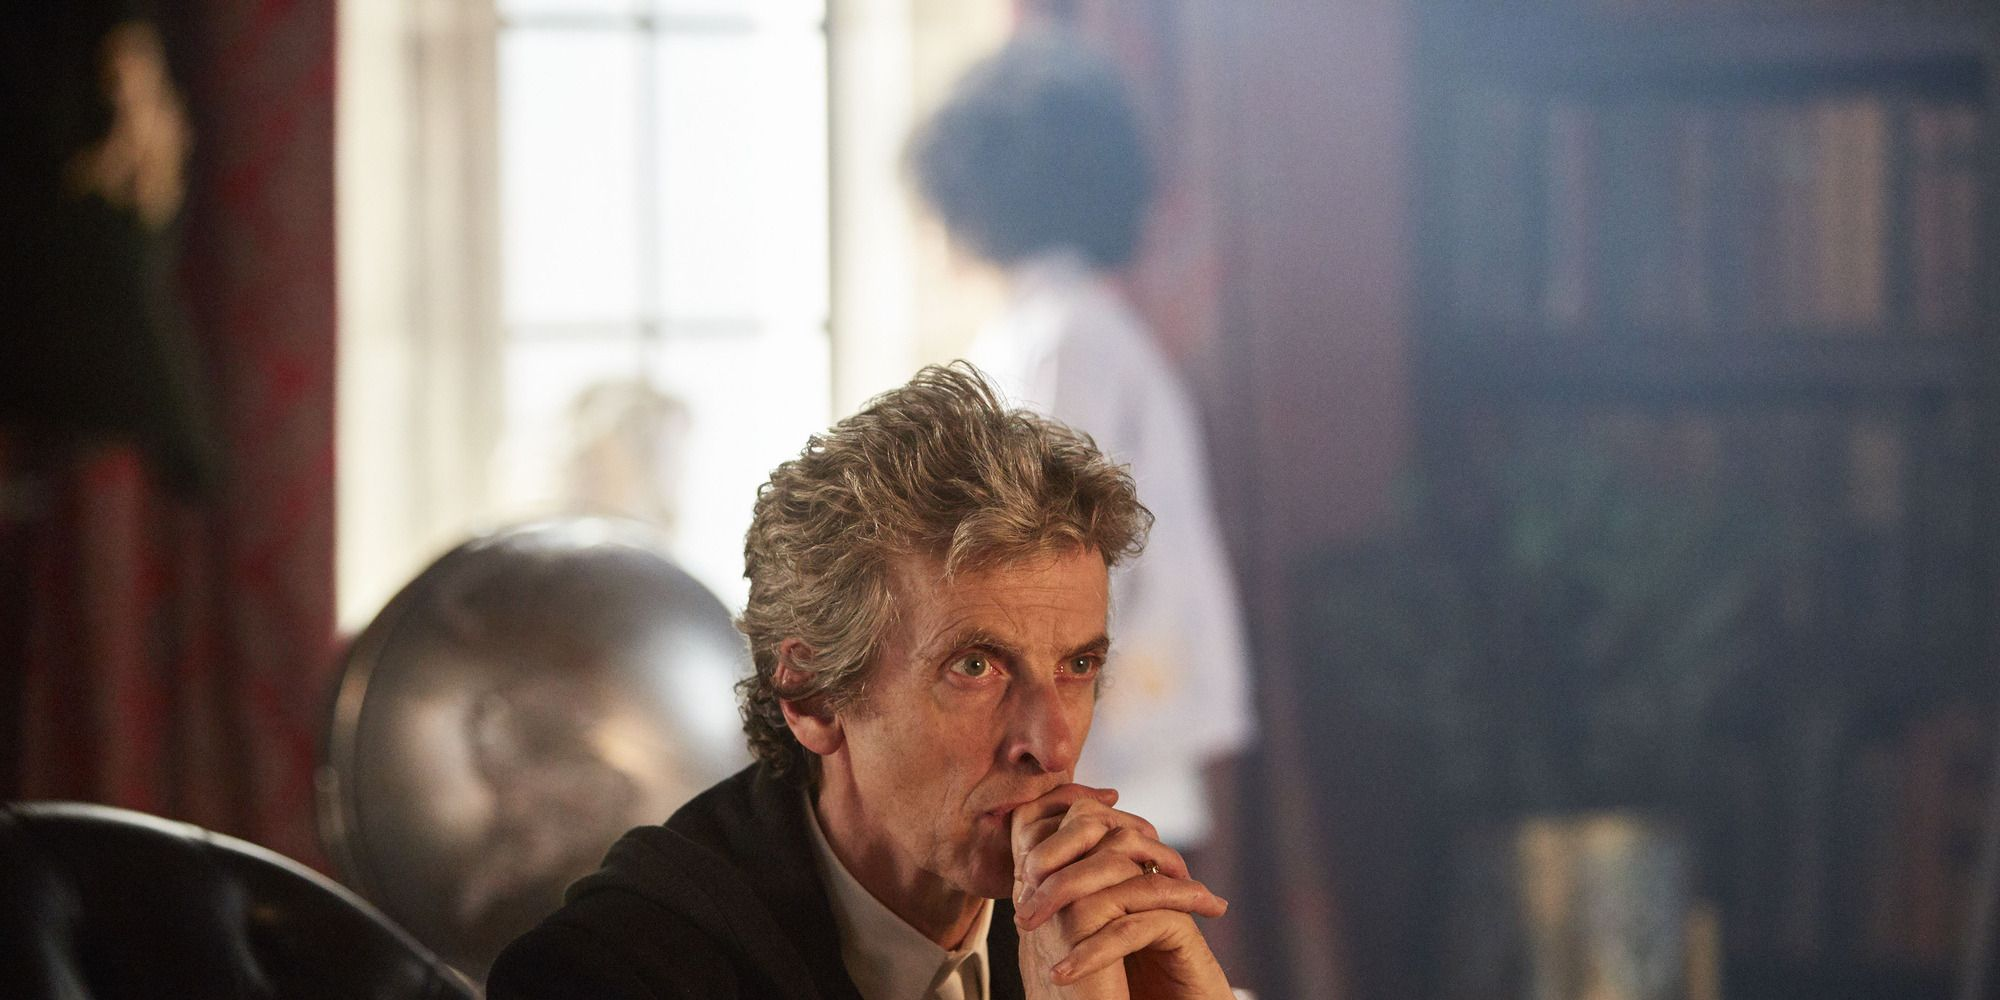 Peter Capaldi in 'Doctor Who' s10e01, 'The Pilot'